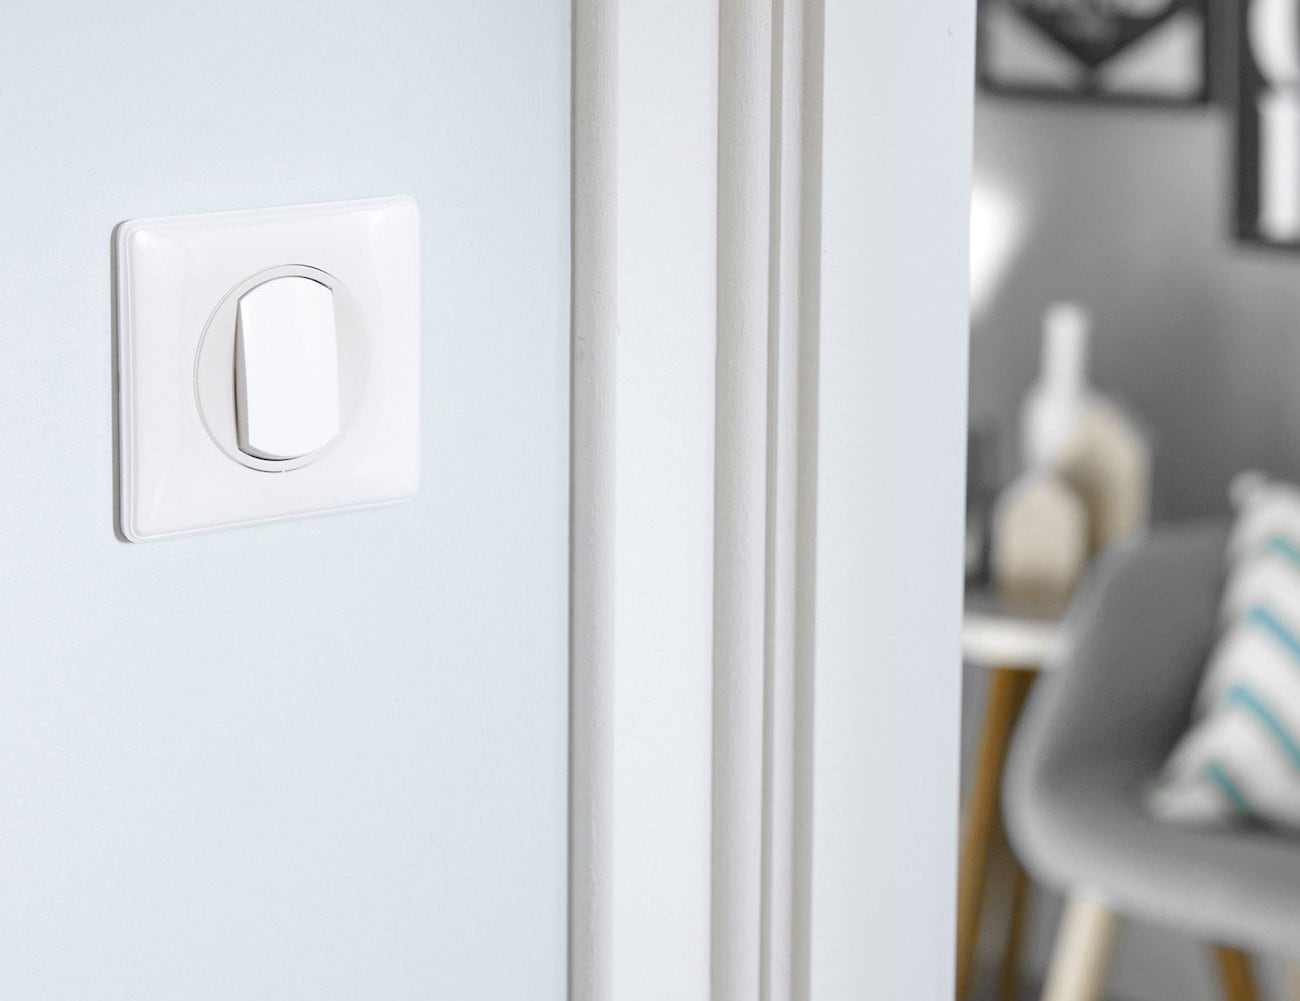 Céliane NETATMO Smart Switches and Outlets